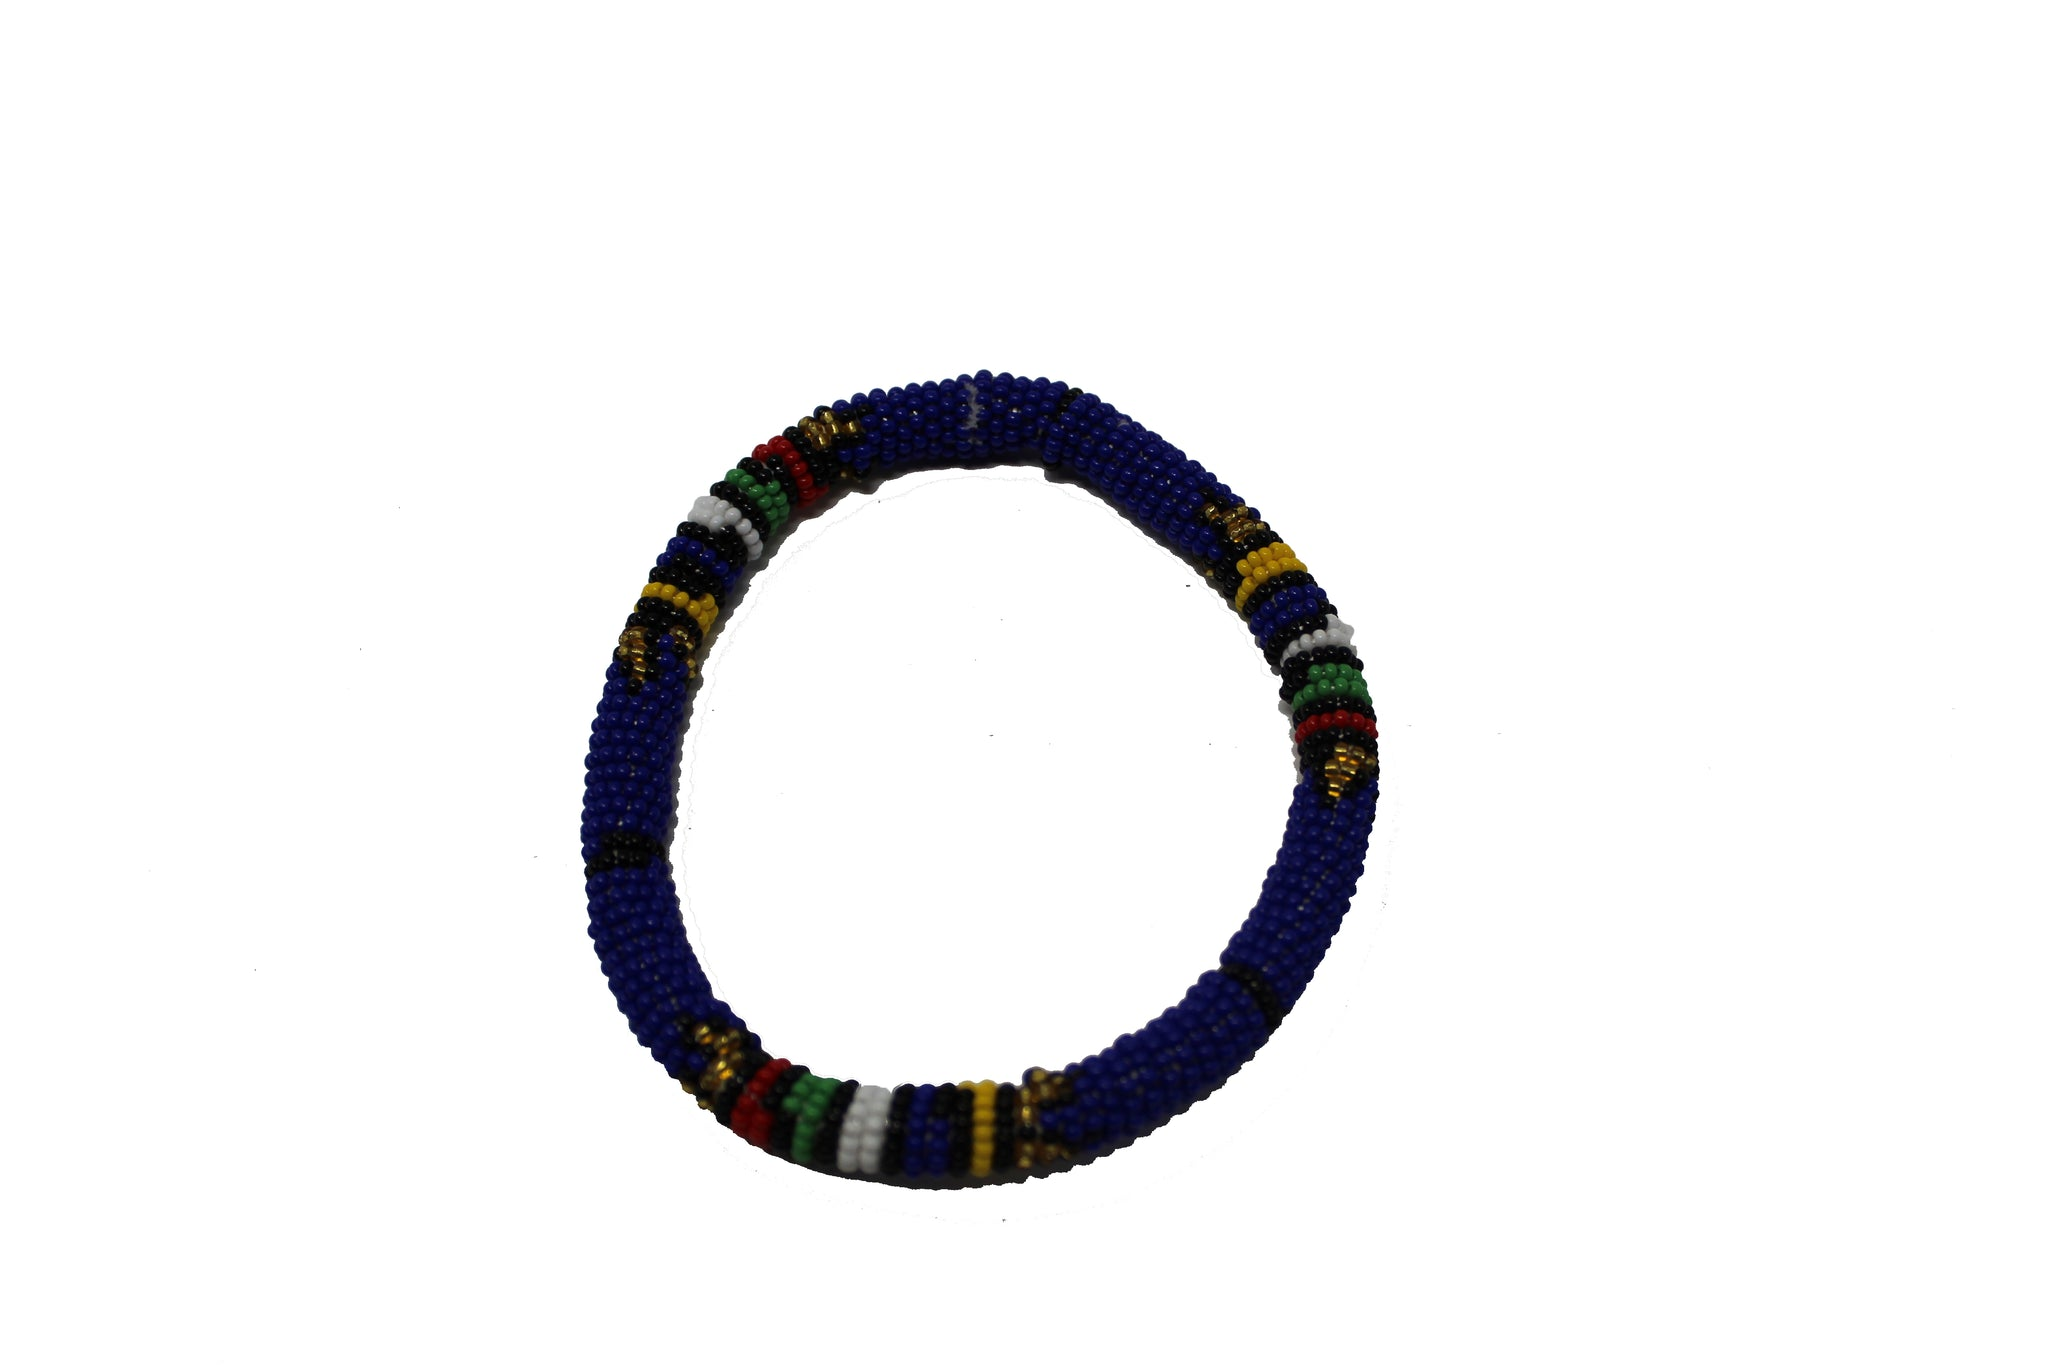 Traditional Beaded Bangle African jewelry Beaded Bangle Free Size bracelet african bangles  handcrafted for women and girls south african tradition jewelry